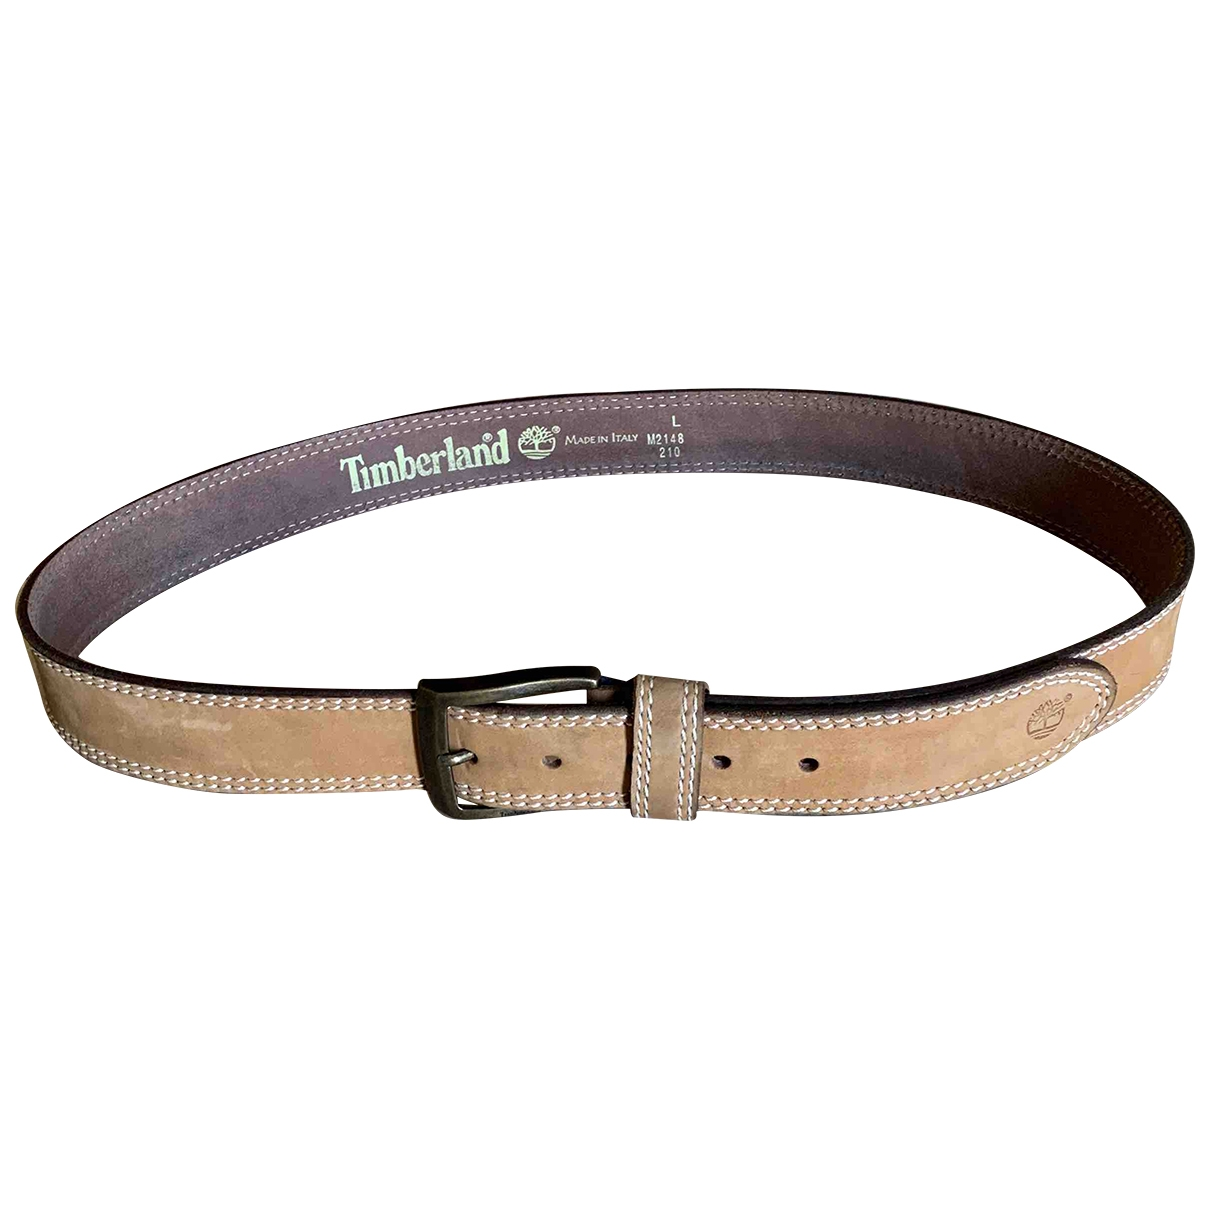 Timberland \N Ecru Leather belt for Men L international